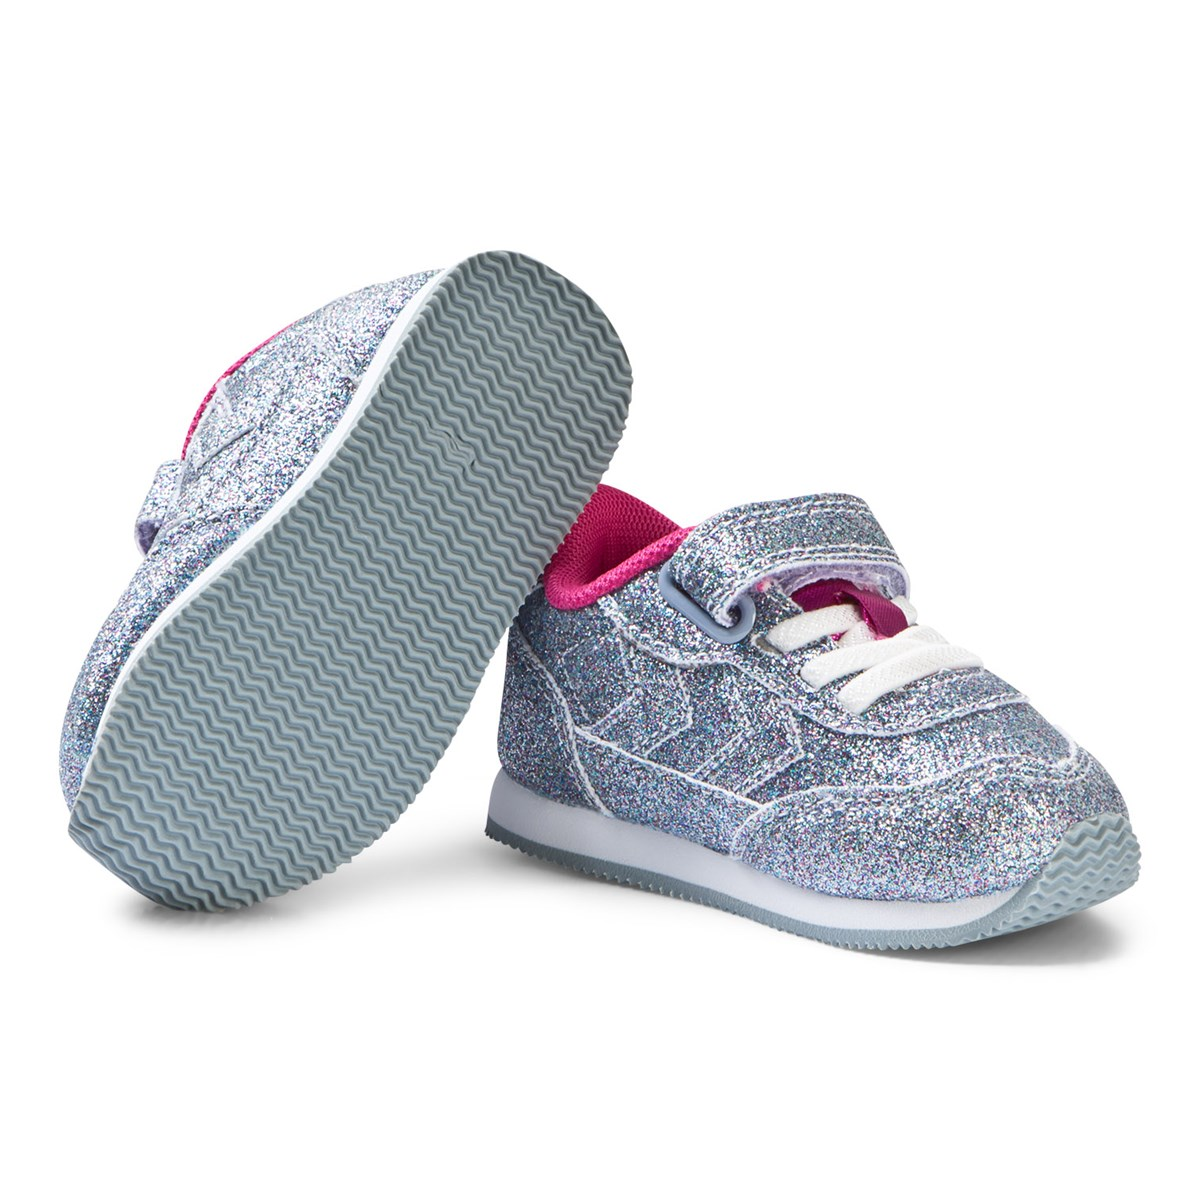 Hummel Reflex Glitter Infant Sneakers Multicolor Babyshop.dk